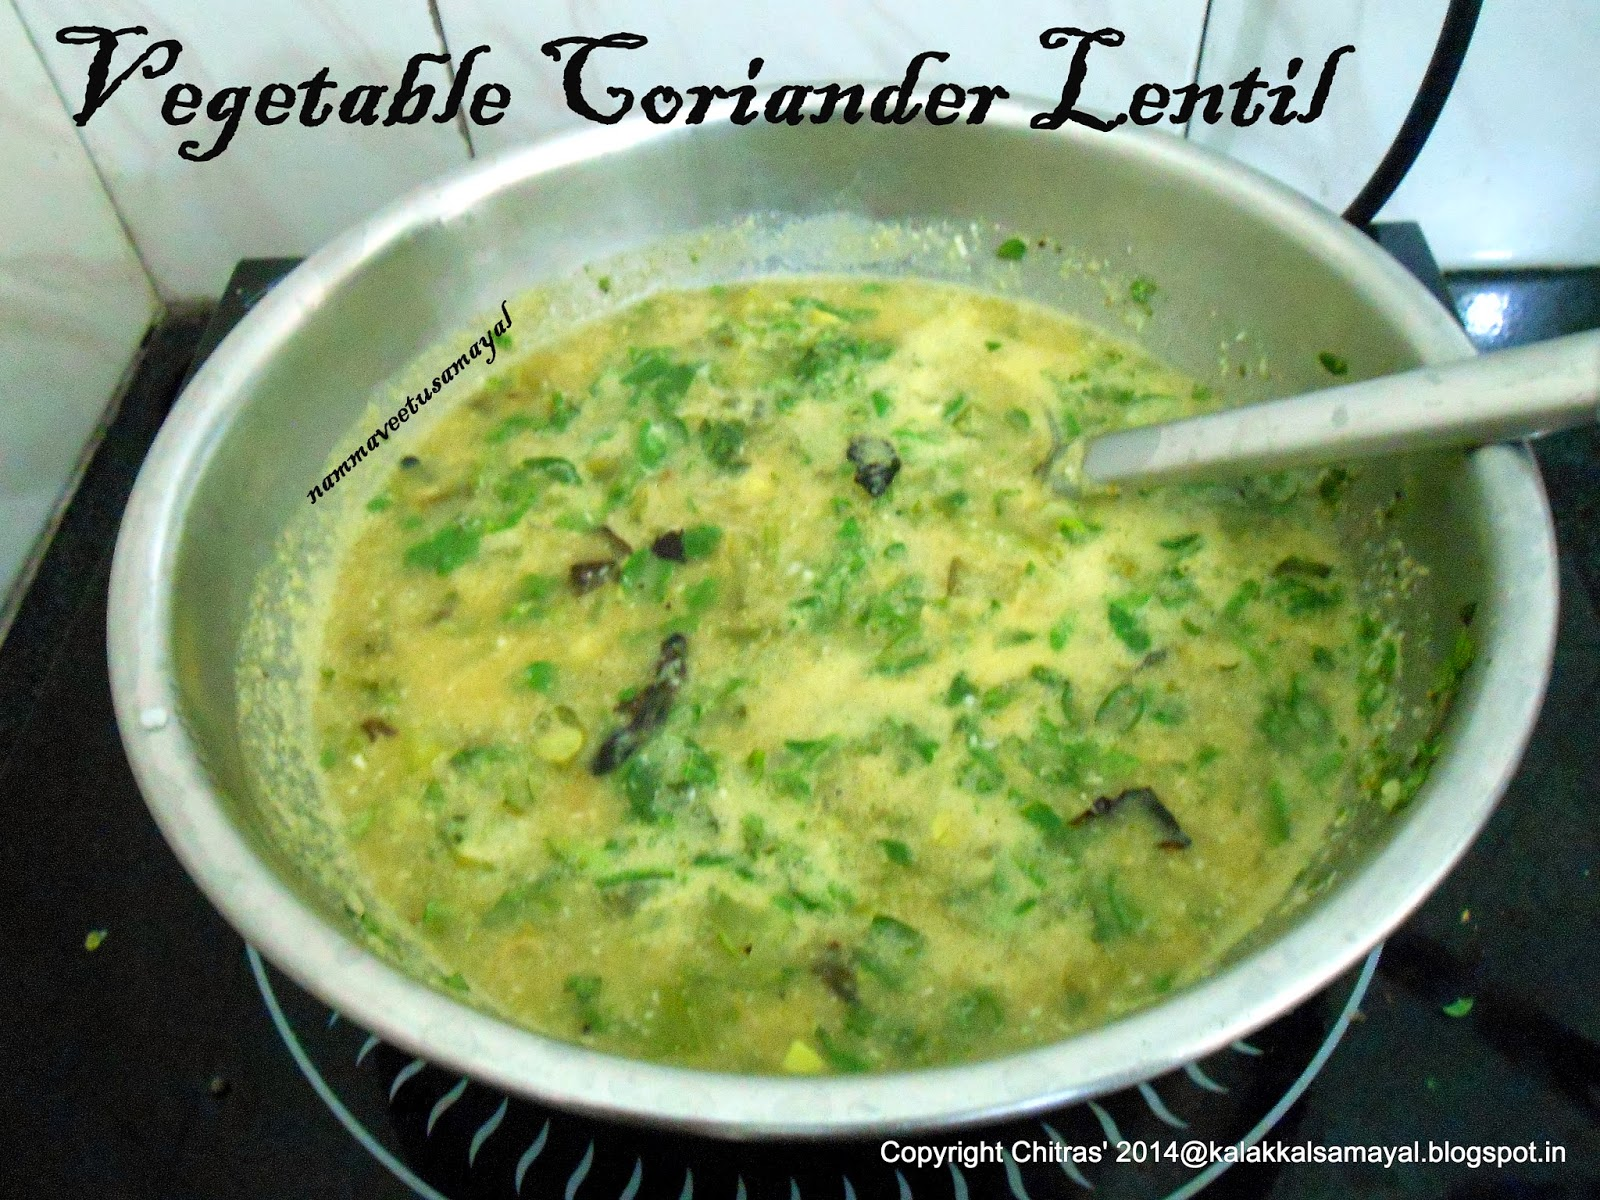 Vegetable Coriander Lentil